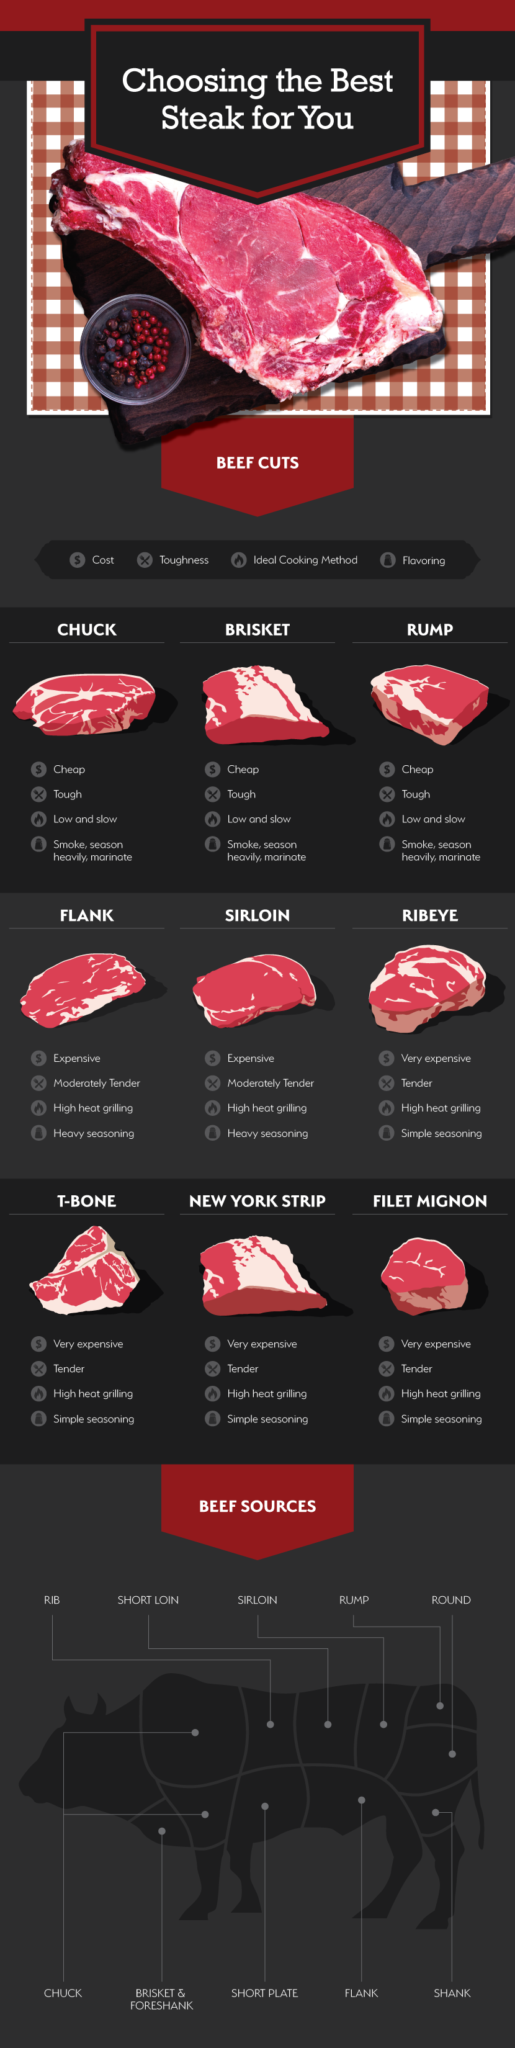 different cuts of beef chart for grilling steak guide